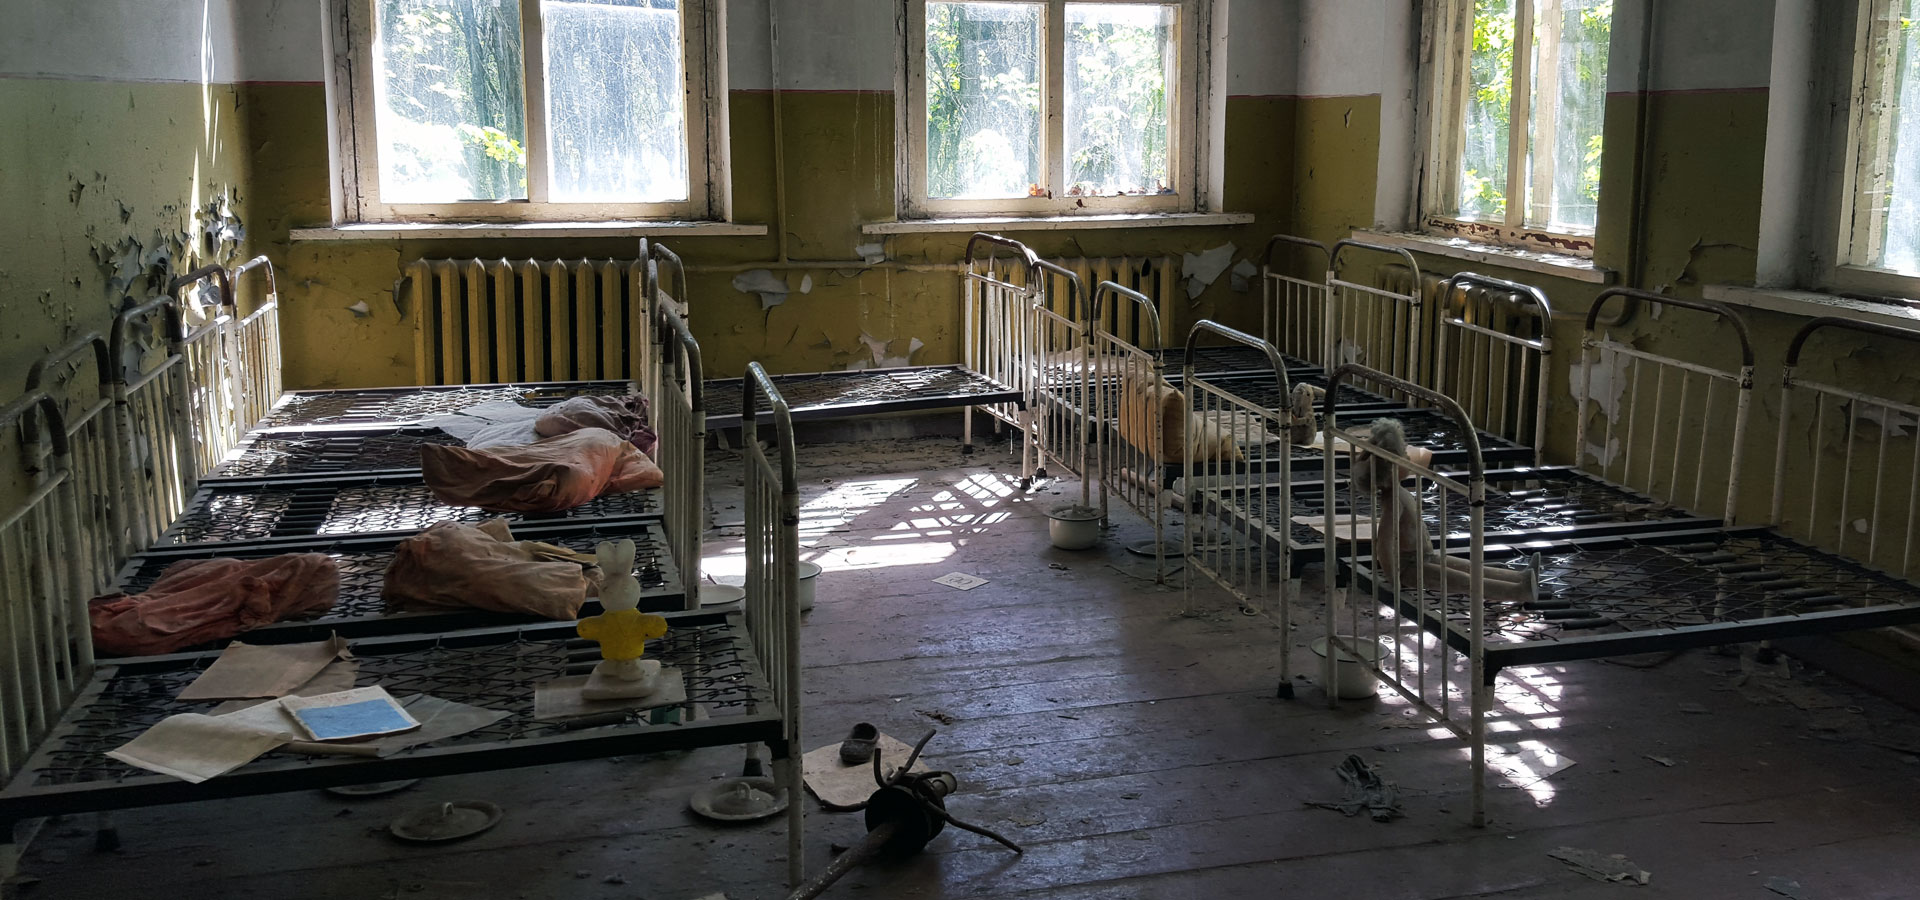 Bedroom in Chernobyl